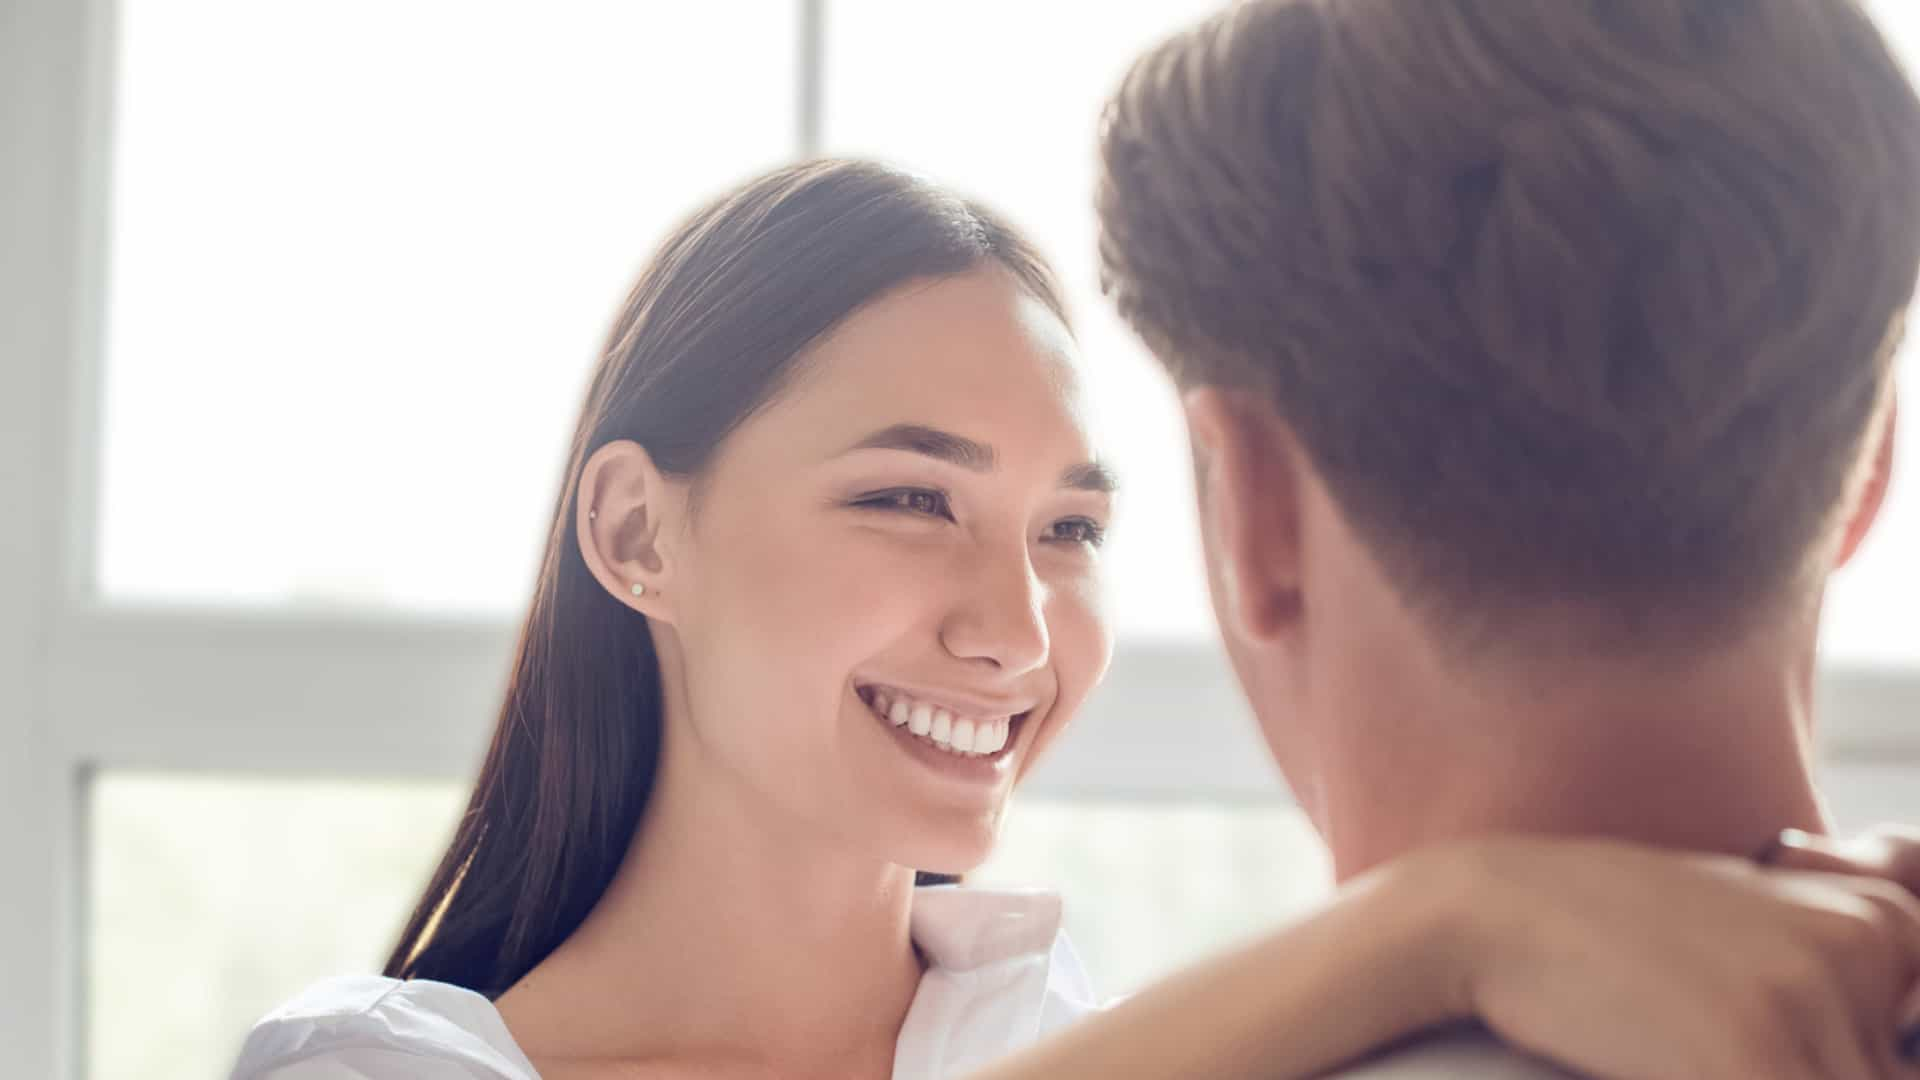 Dating agency: woman smiling at man